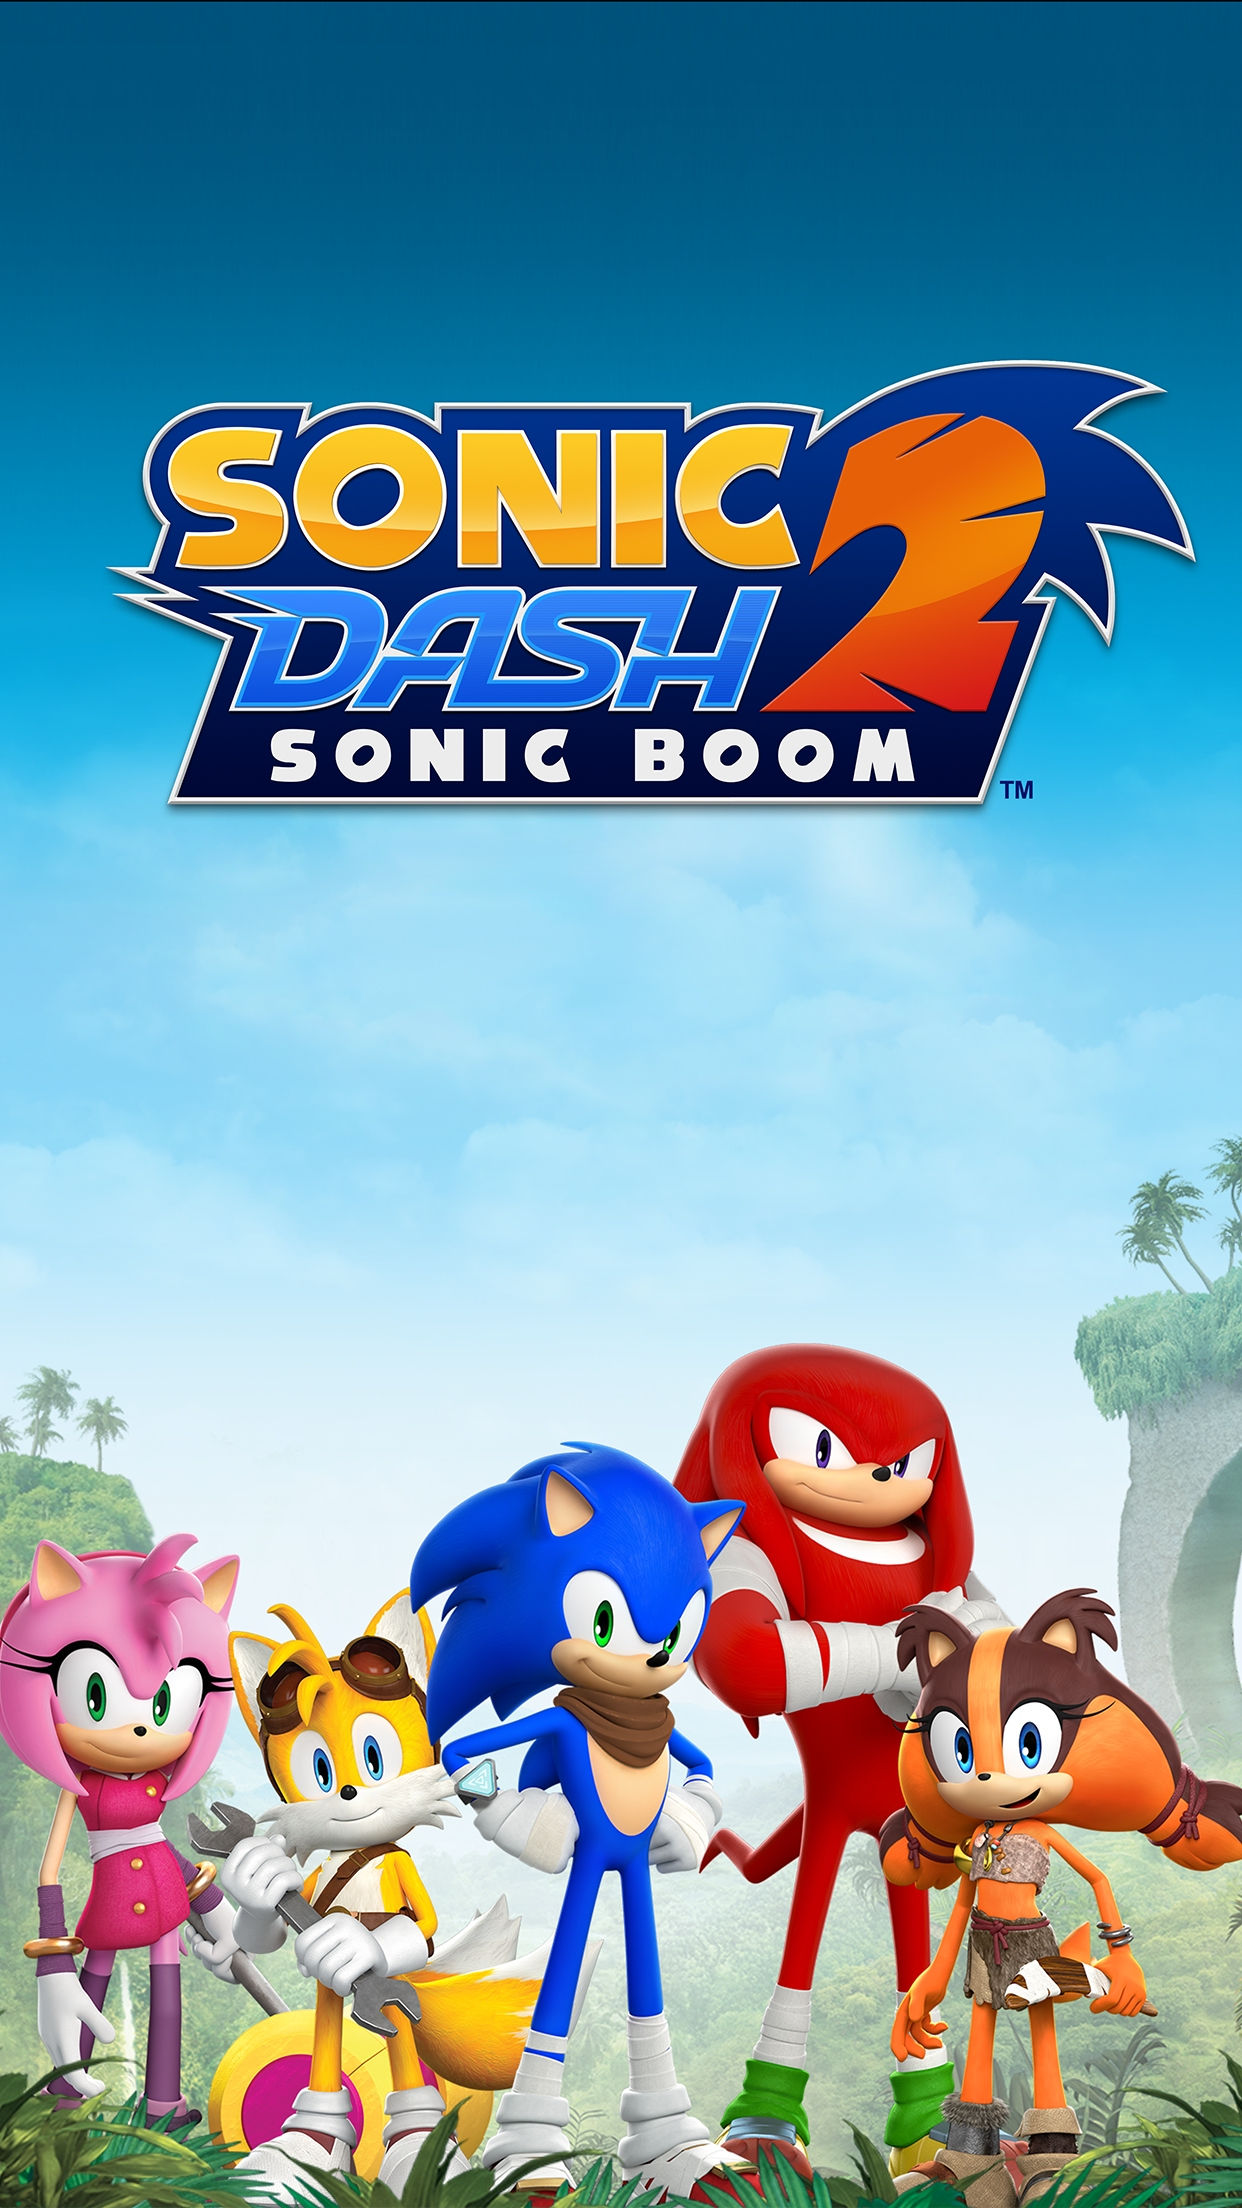 Win an iPad Mini 4 thanks to SEGA and Sonic Dash 2, out now on iOS and Android